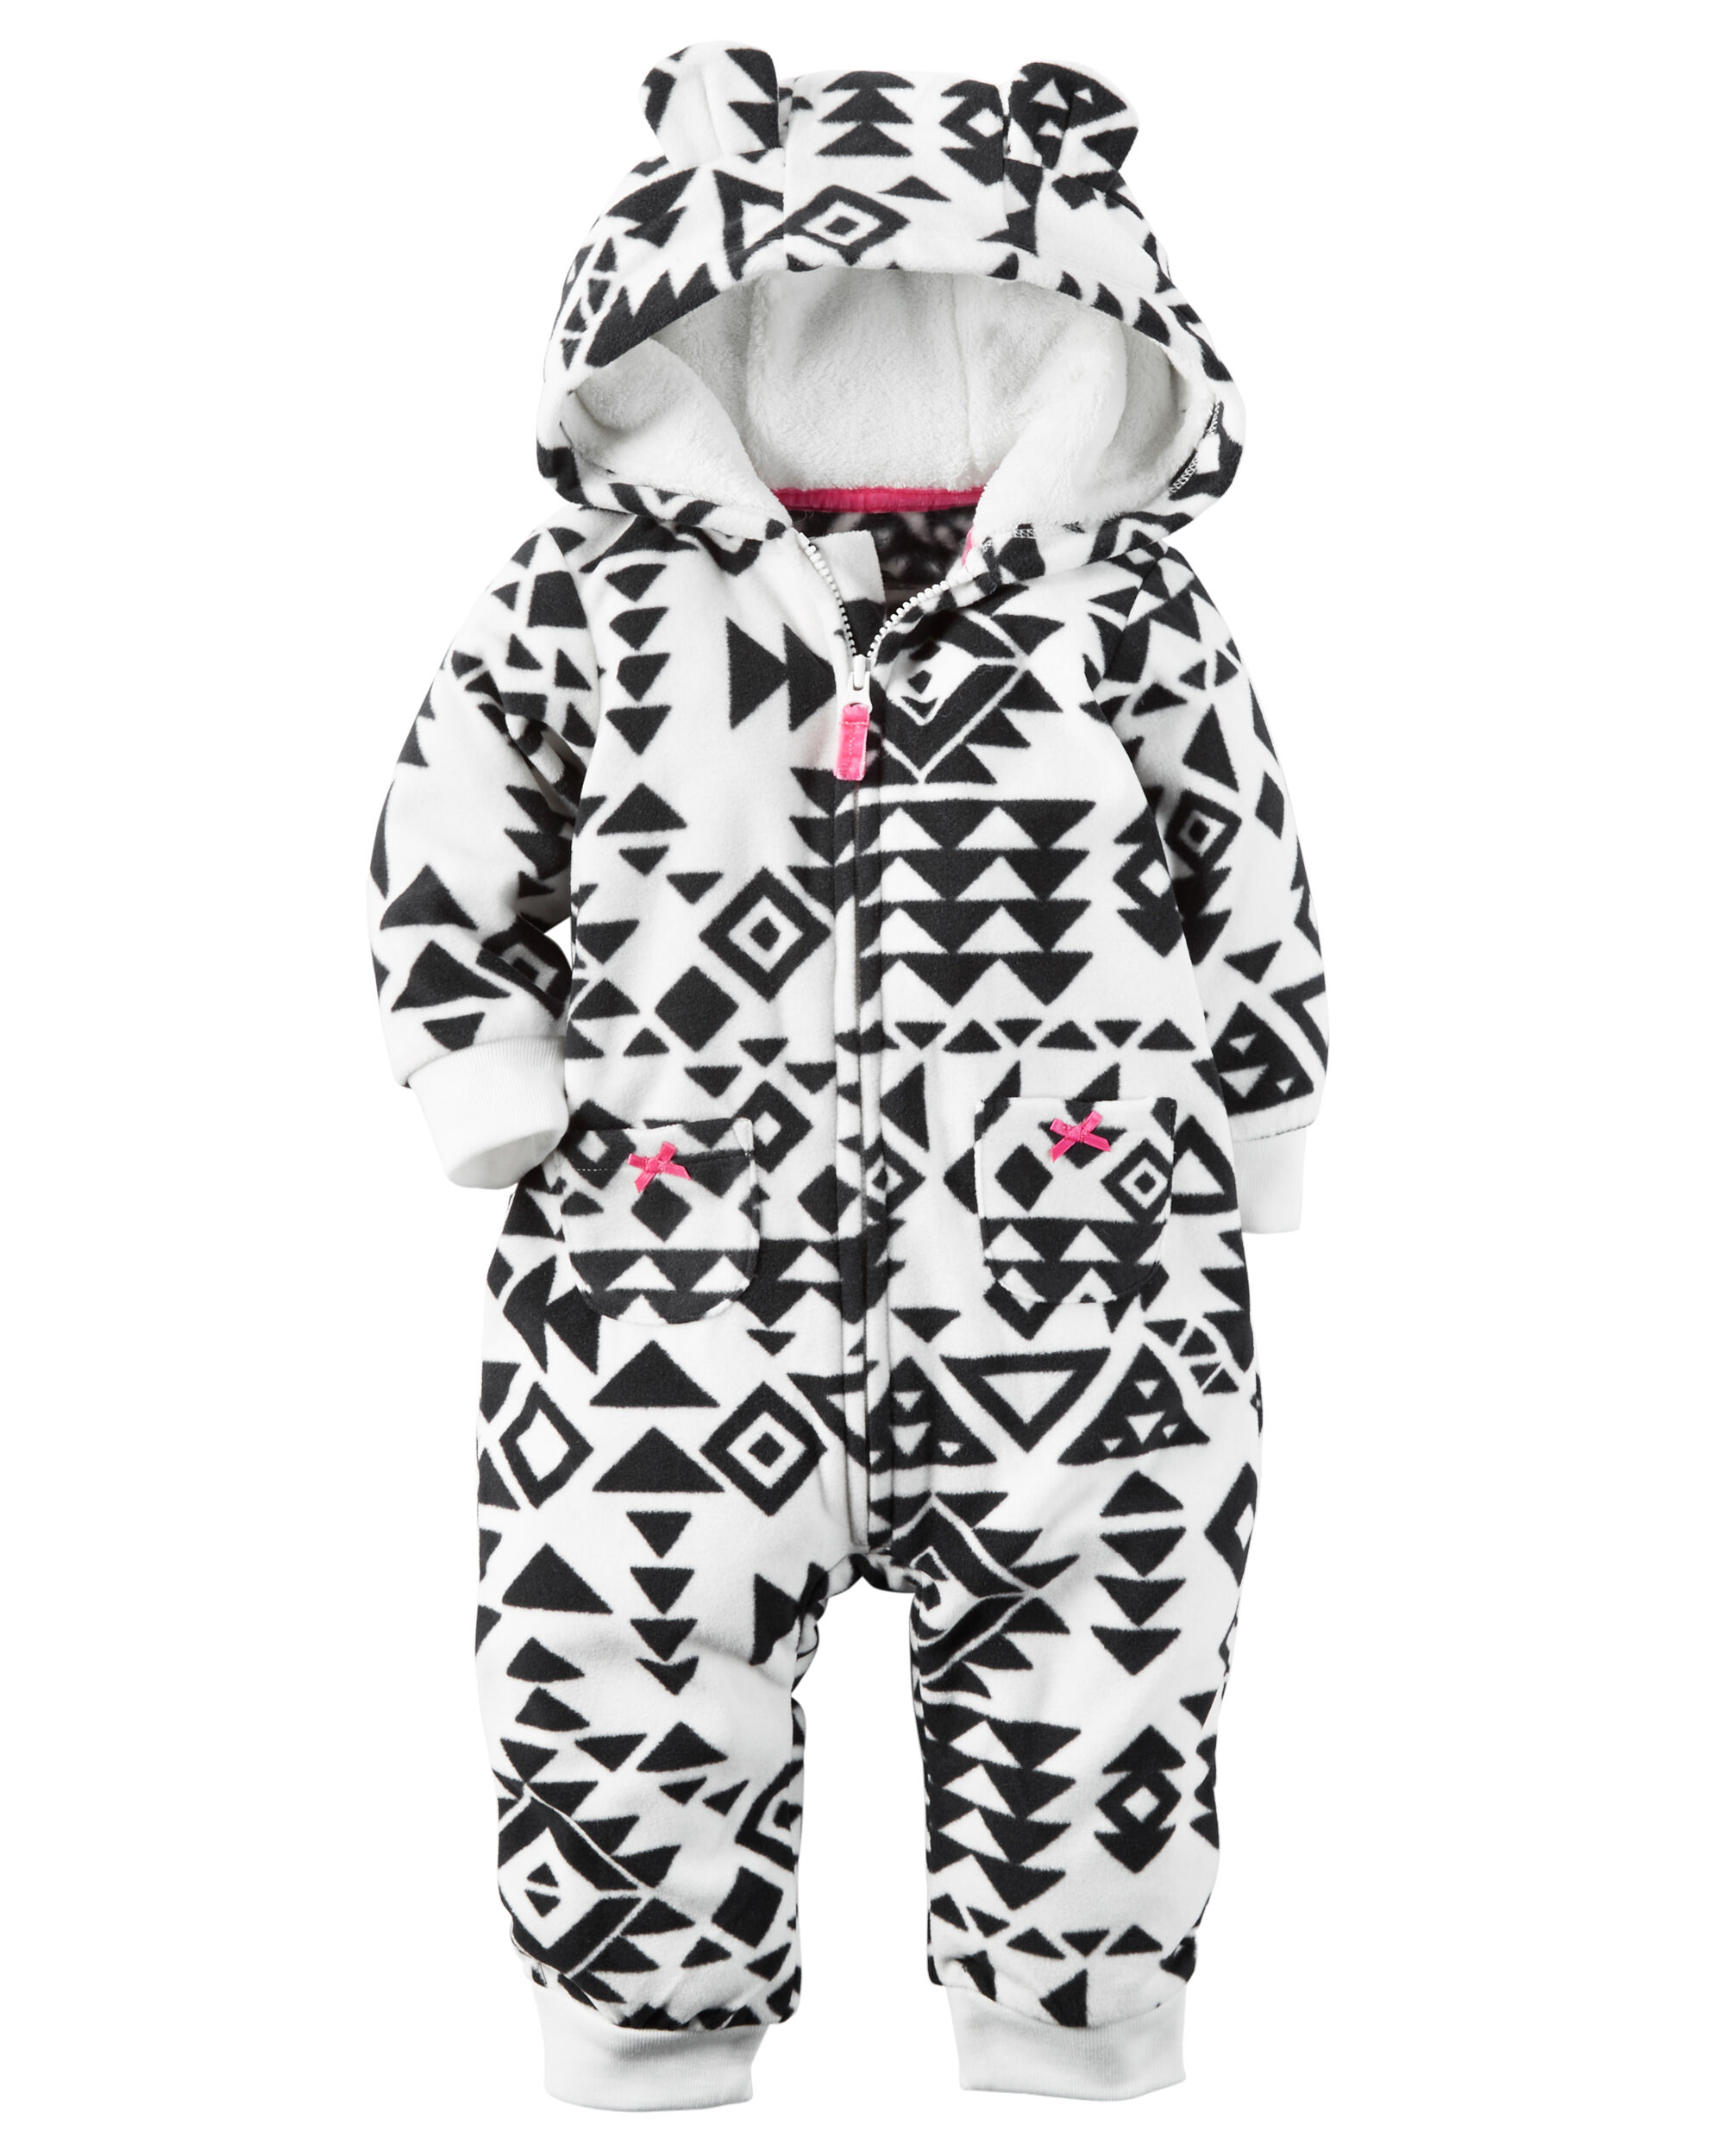 5f1b458d6dbb Carters hooded fleece jumpsuit months carters jpg 2000x2500 Baby girl hooded  fleece jumpsuit